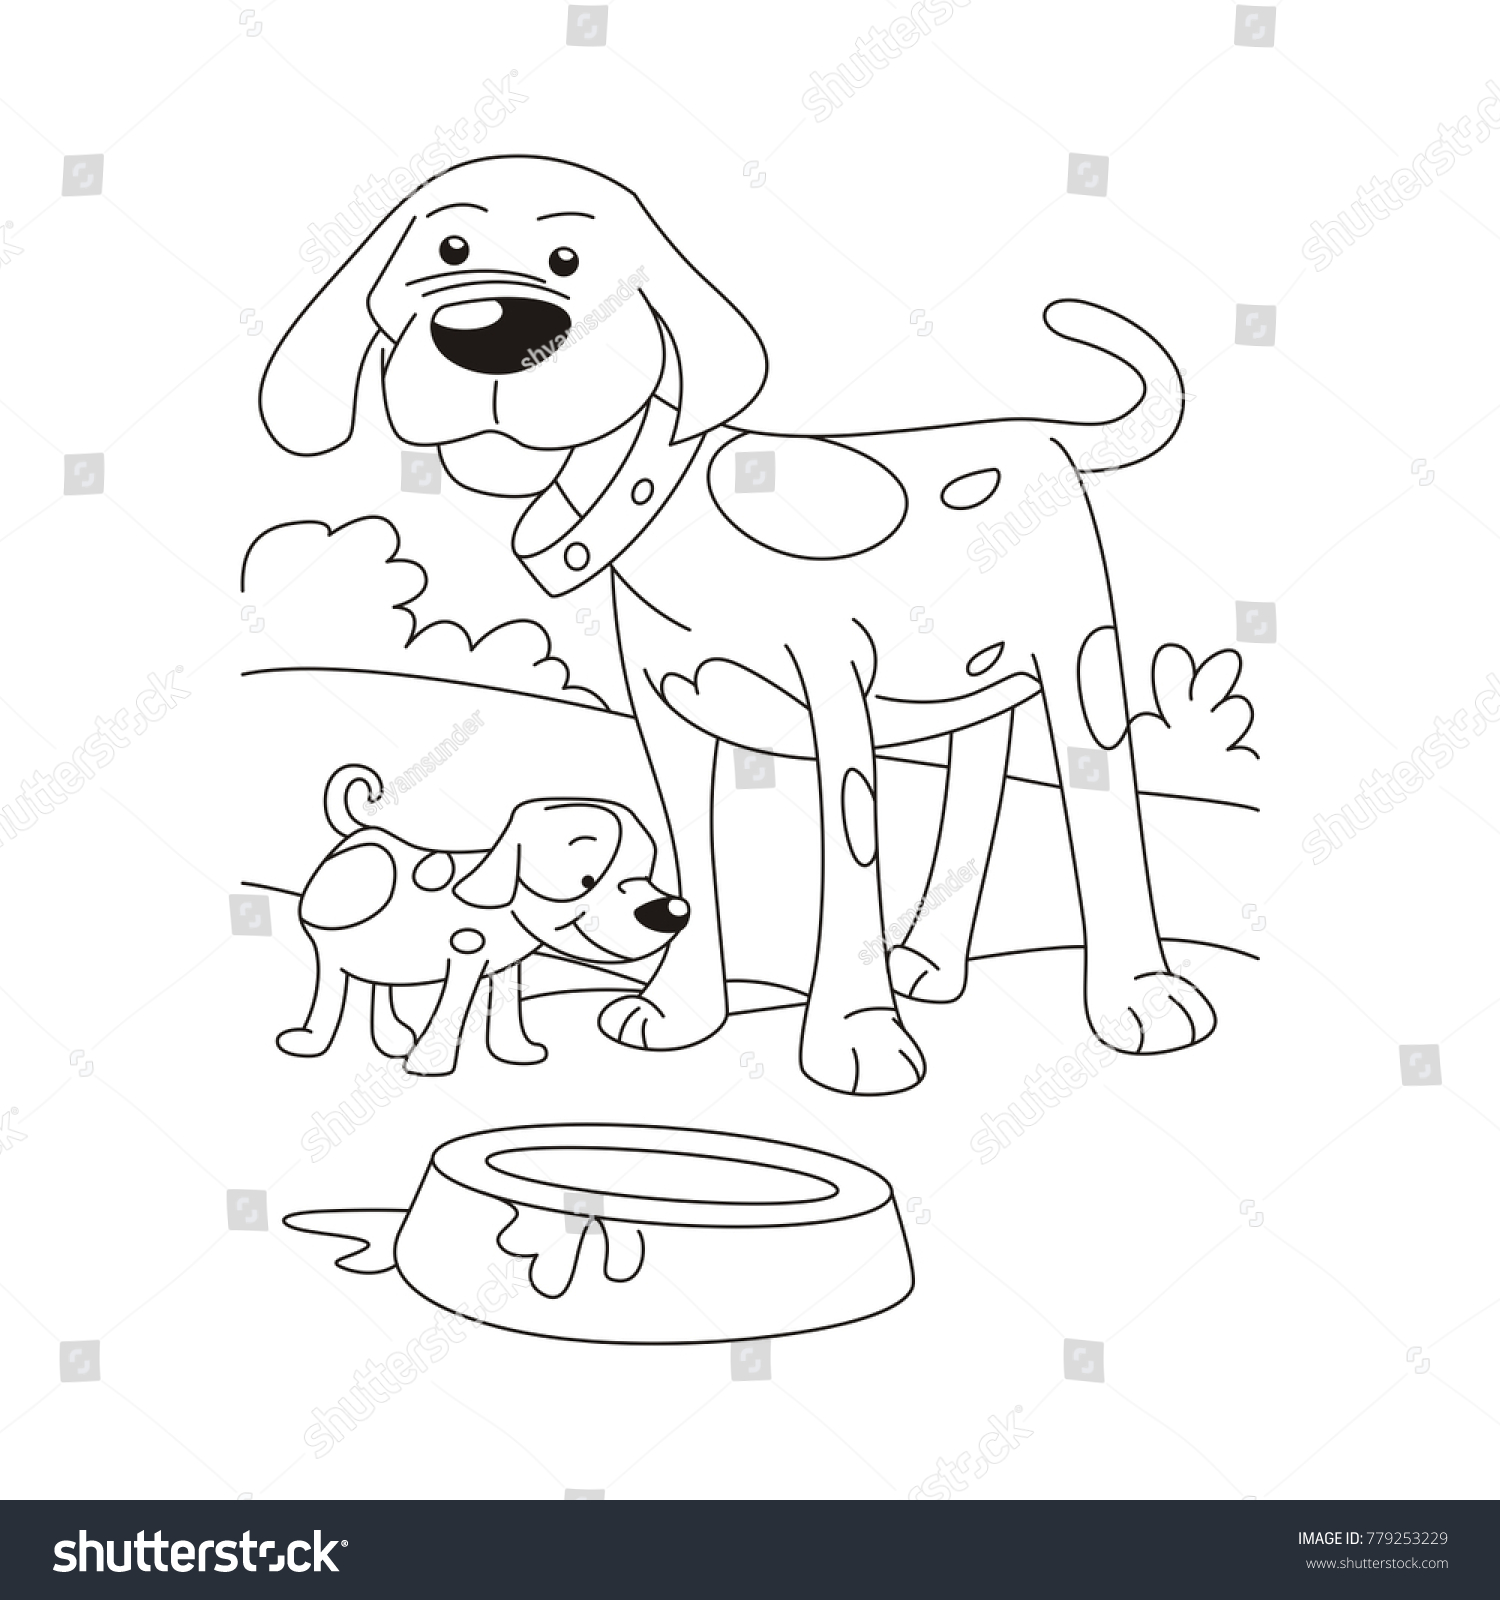 Dog Puppy Coloring Page Stock Vector 779253229 - Shutterstock